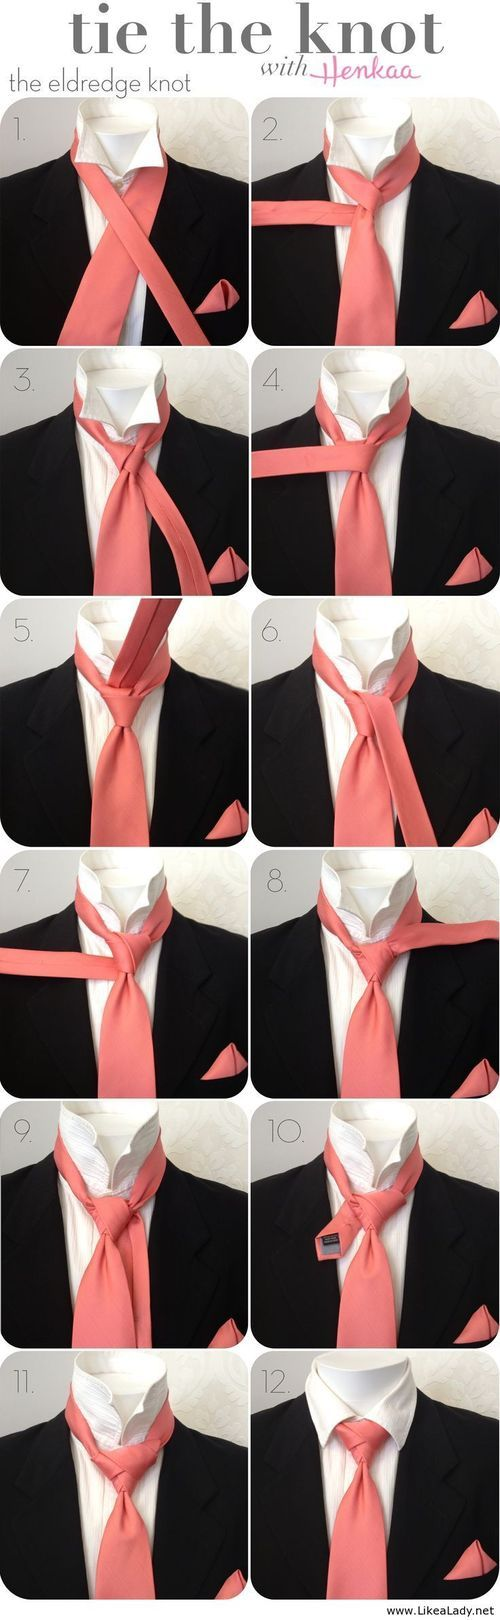 17 Best Images About Inspiration On Pinterest Capri Cool Tie How To A Double Windsor Knot Diagram Pictures 1 Knots And Natural